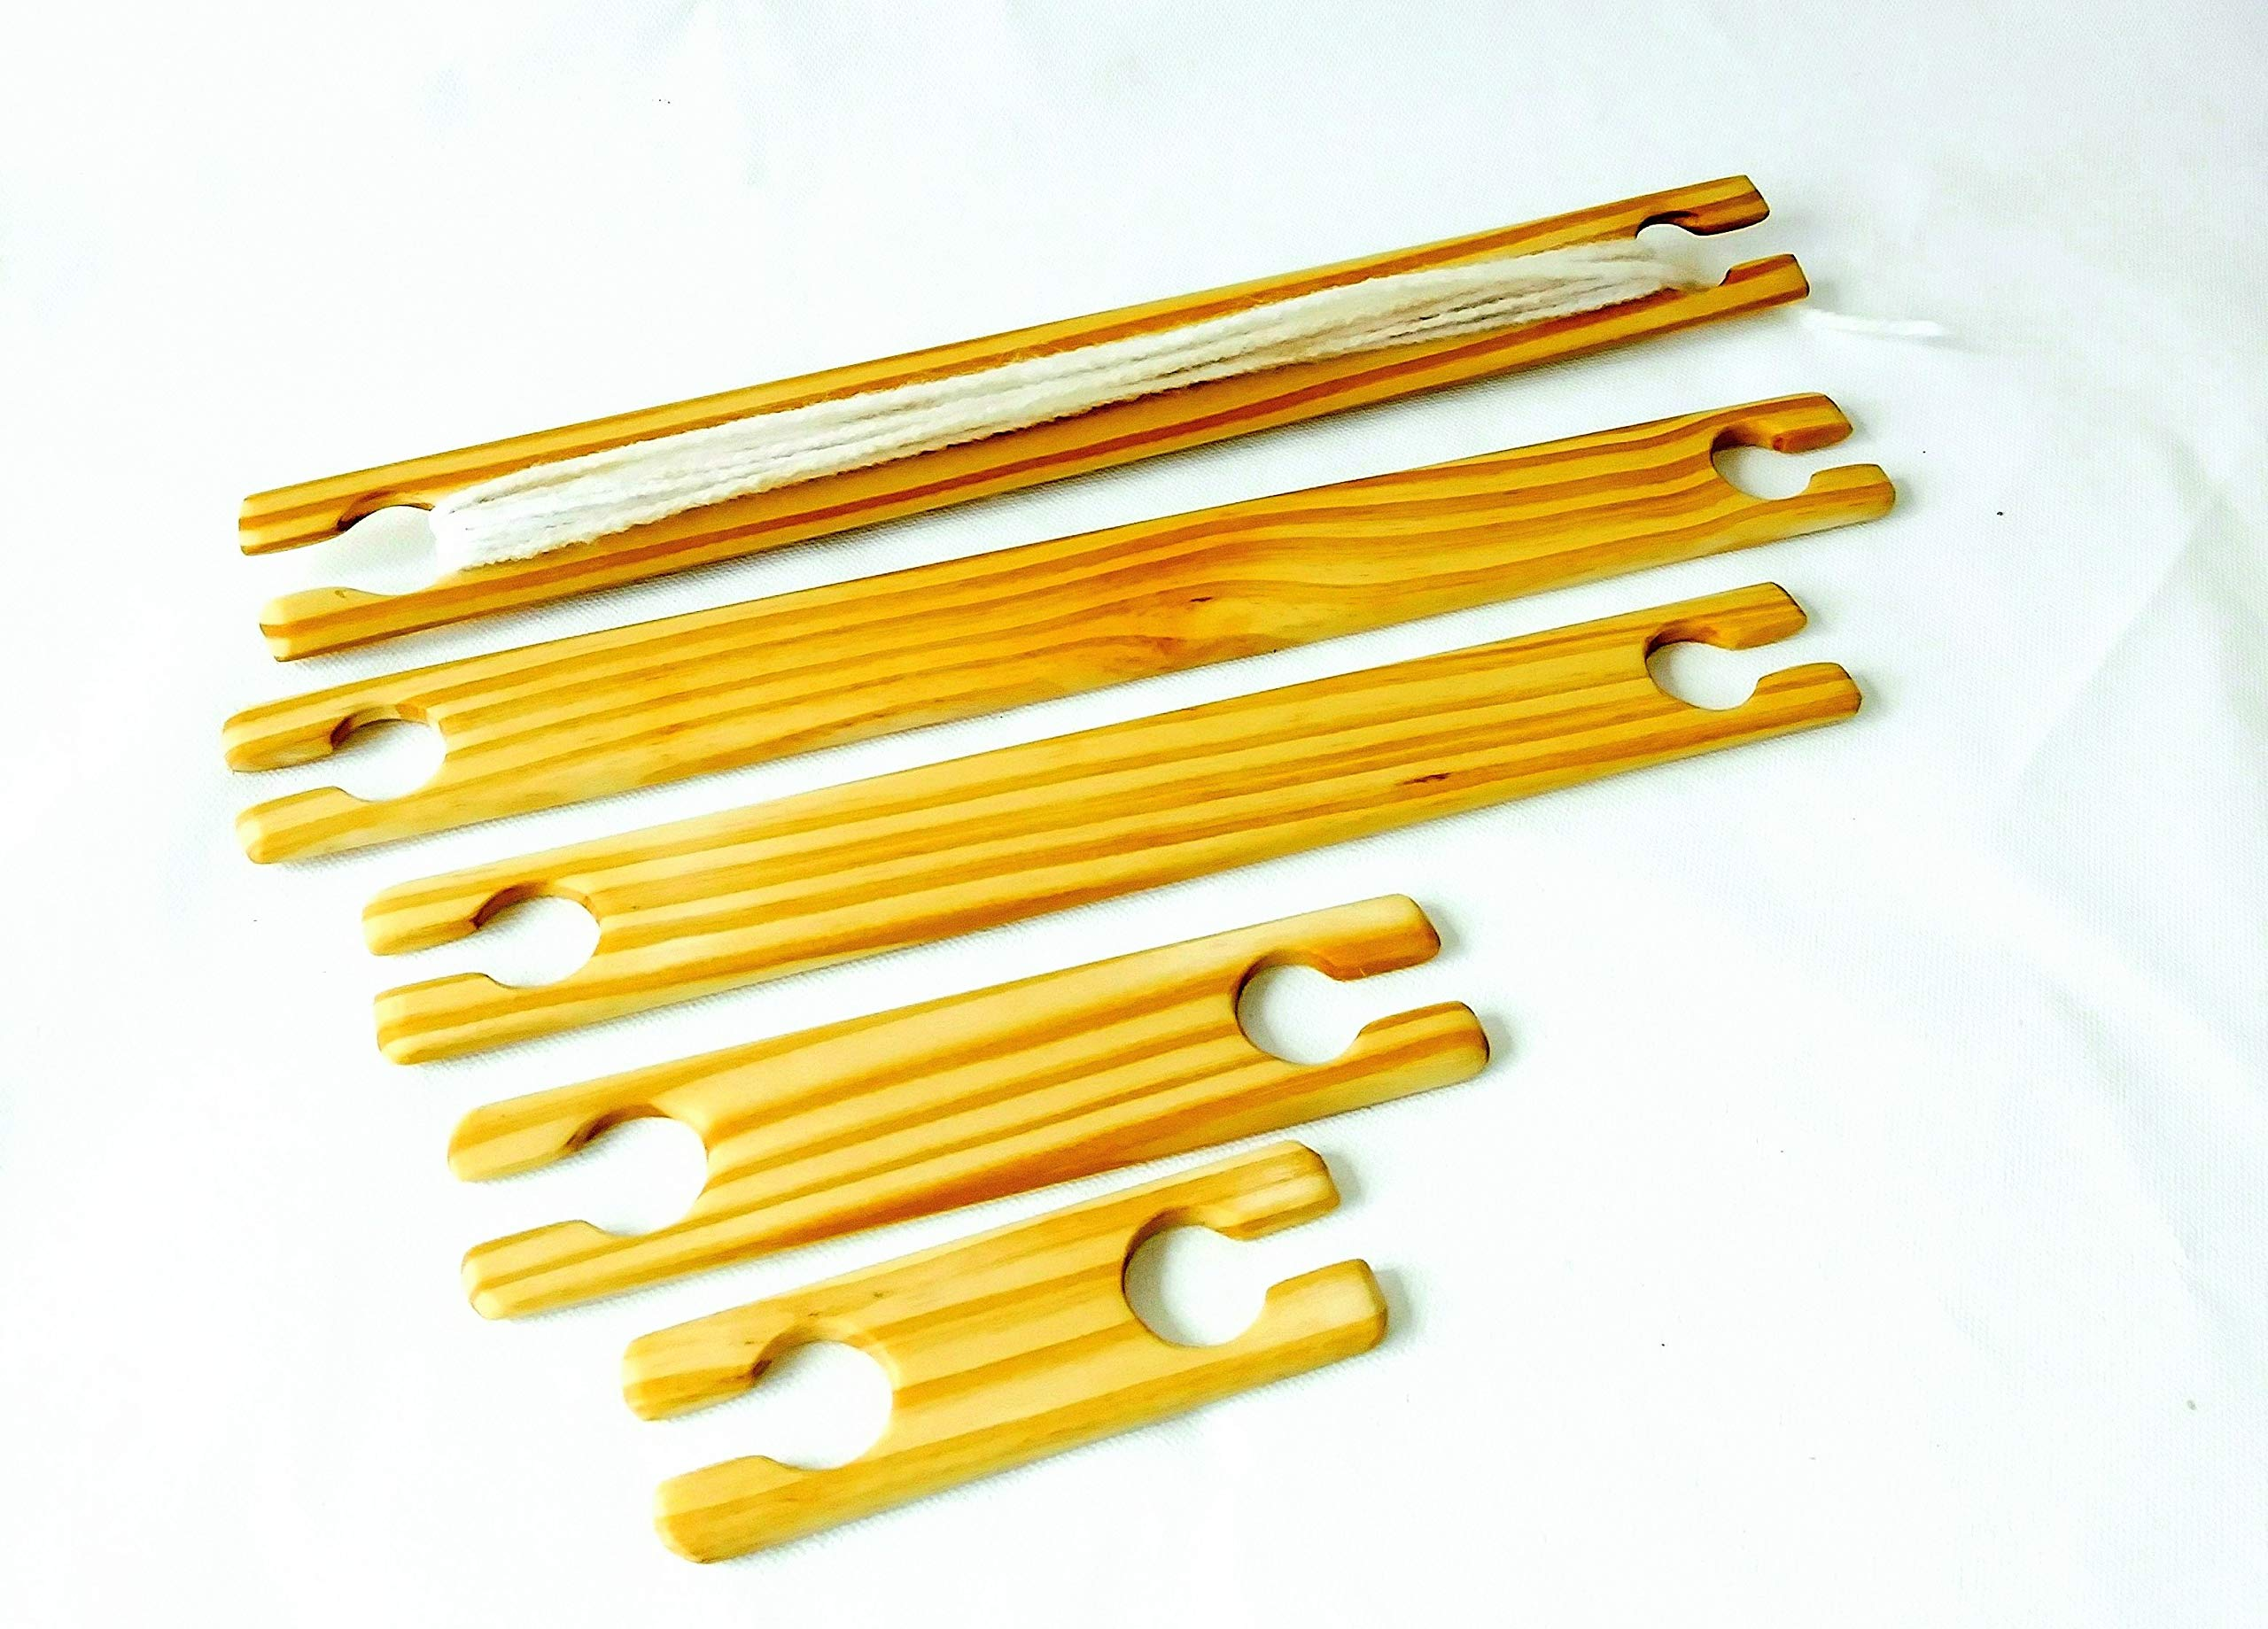 5 Variety sizes Stick Shuttles 4,6,8,10 and 12 inch weaving stick shuttles.